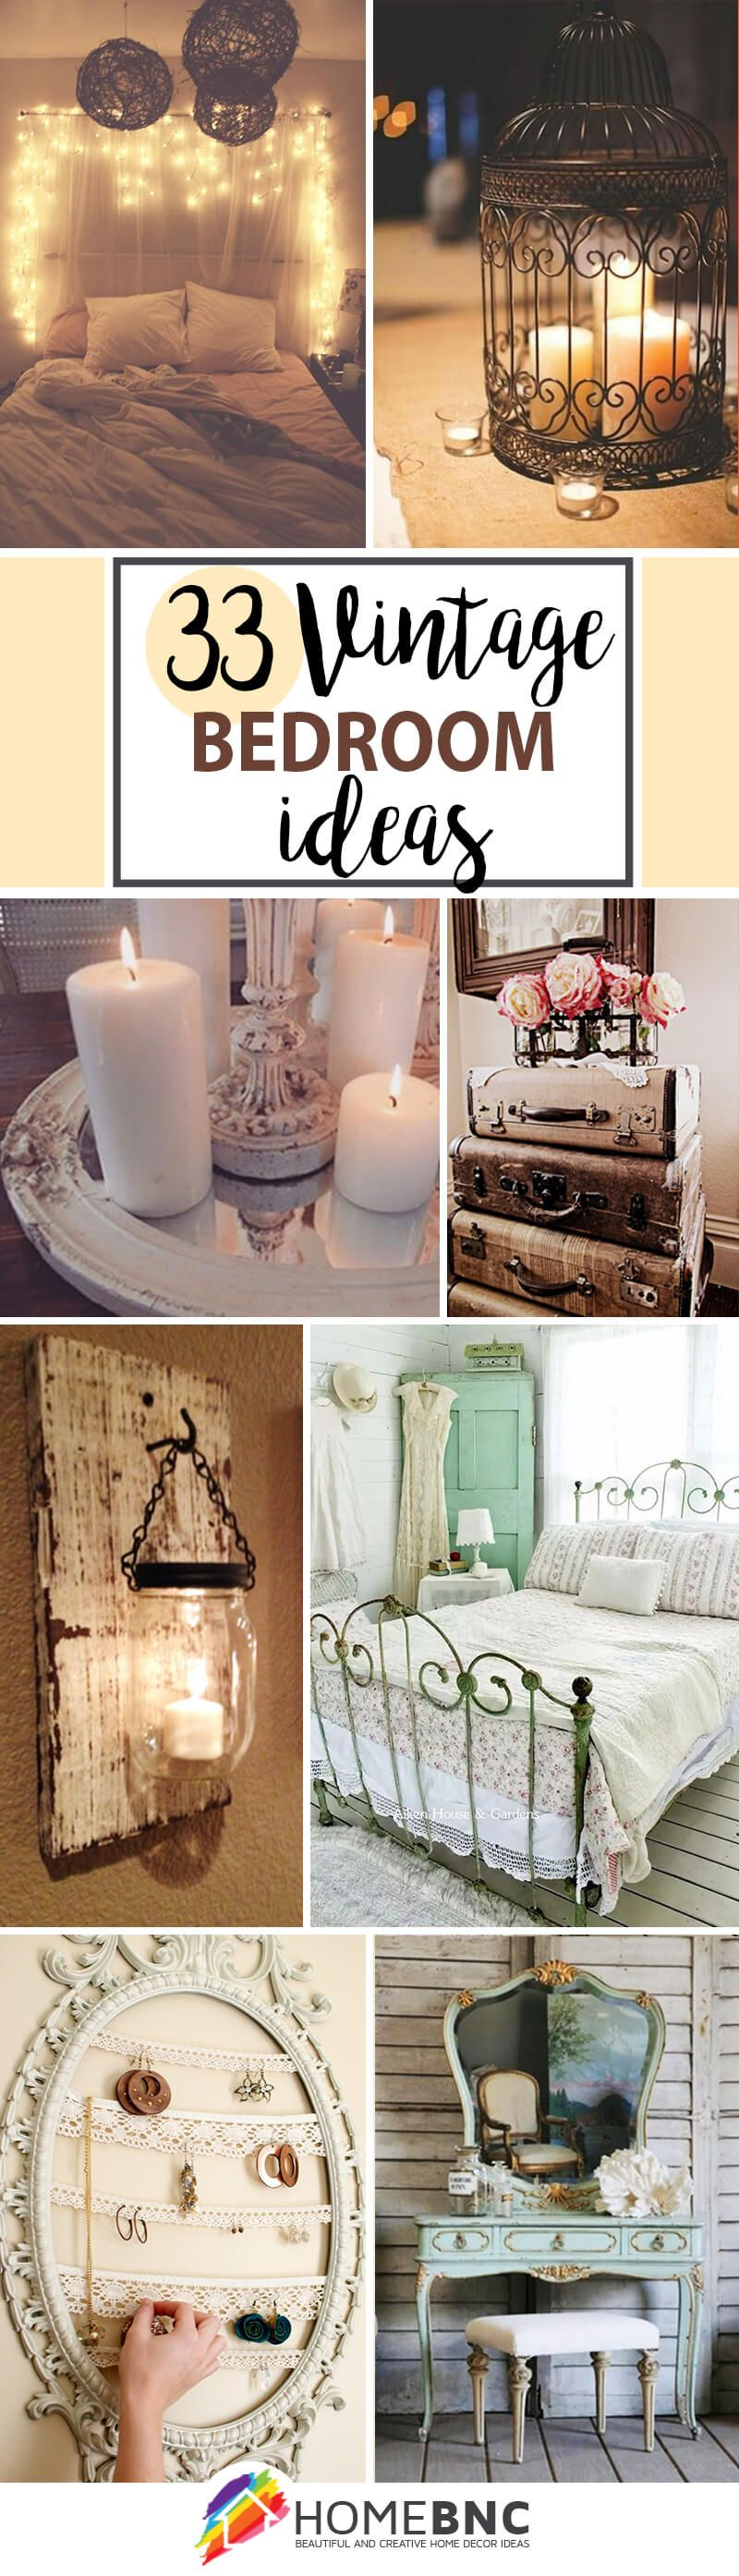 33 Vintage Bedroom Decor Ideas to Turn your Room into a Paradise ...